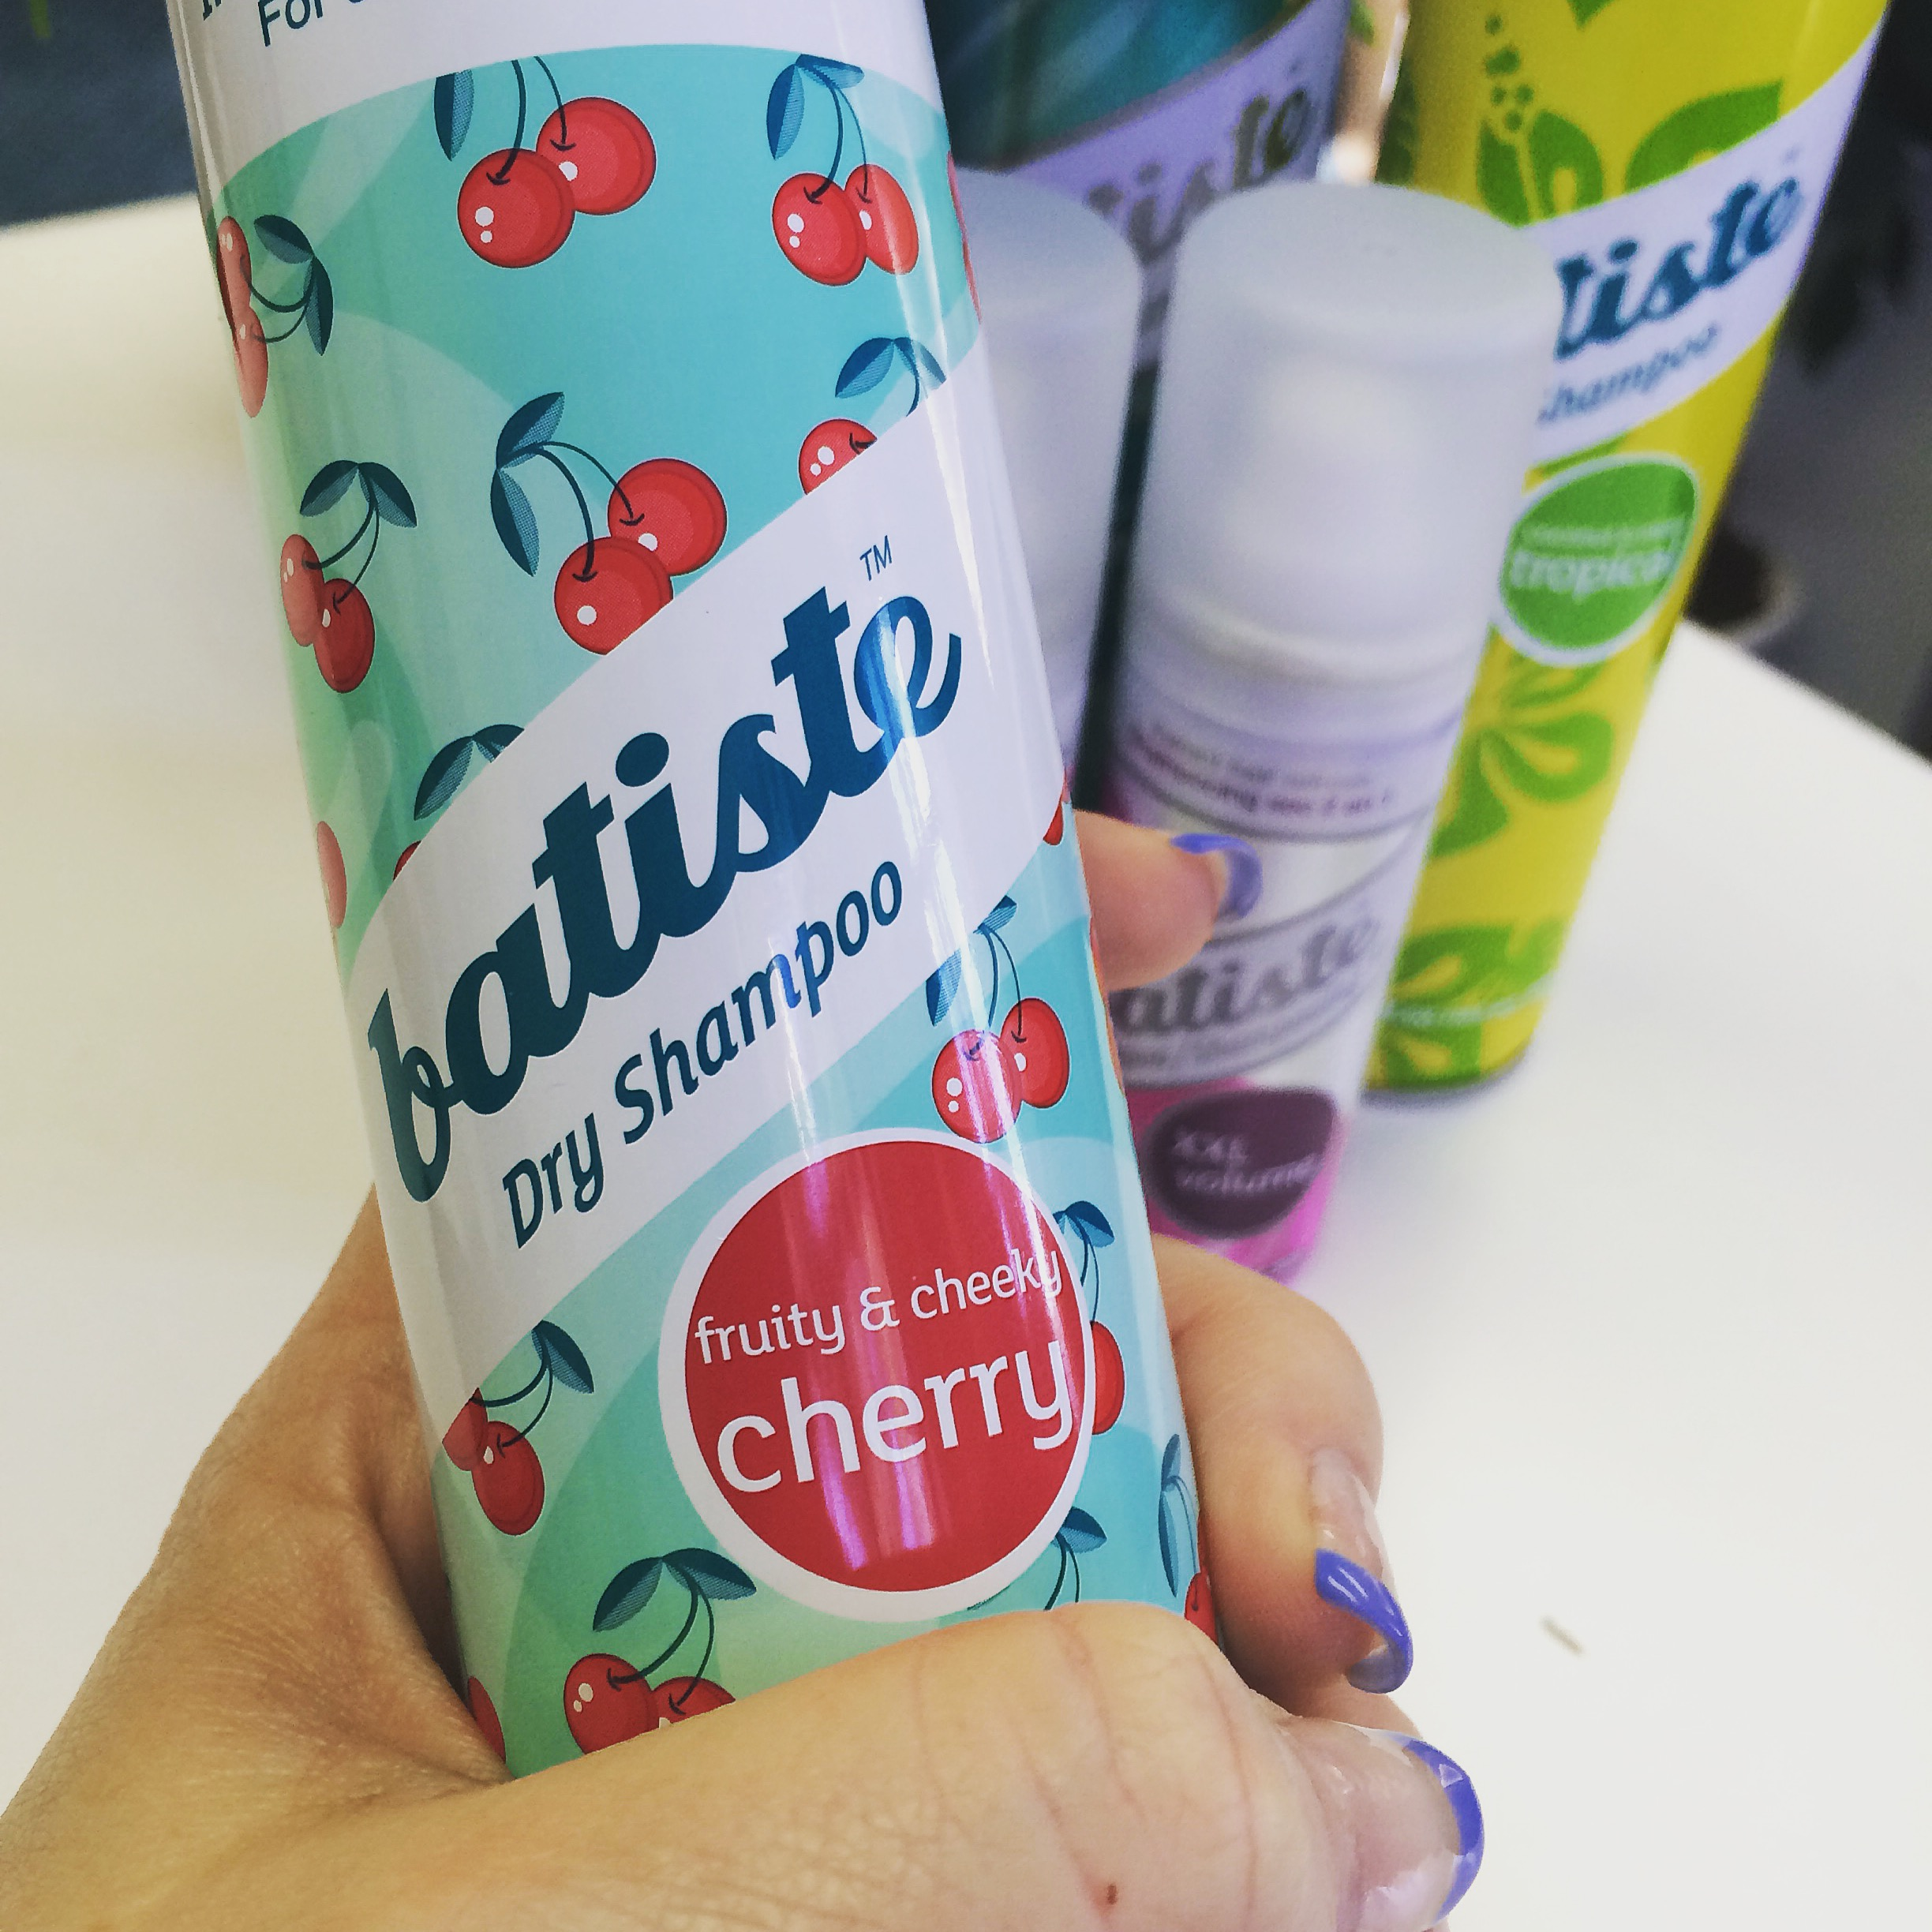 My favourite one: Batiste™ Dry Shampoo Cherry (taken with my iphone)